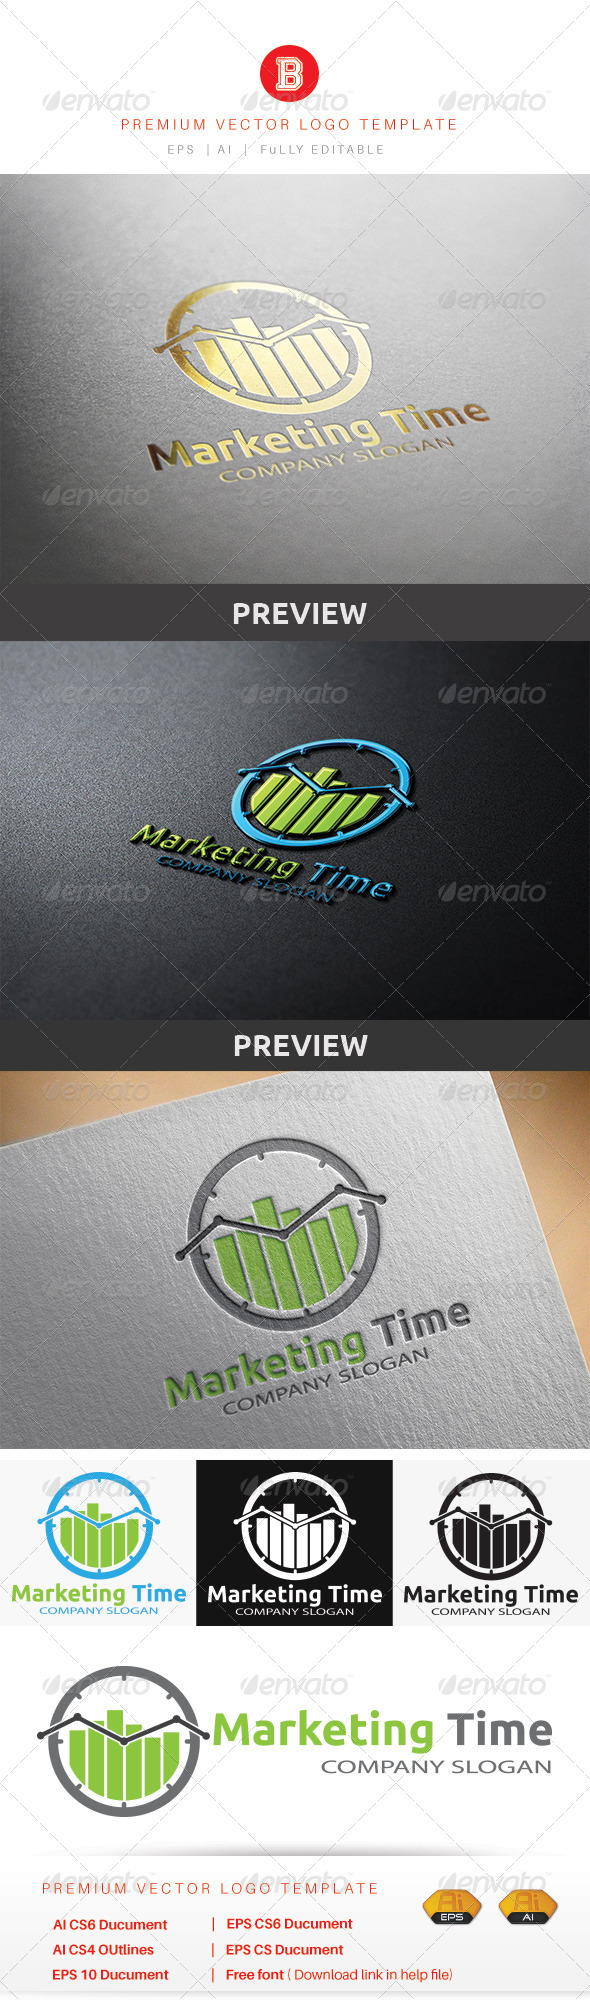 GraphicRiver Marketing Time 8679855